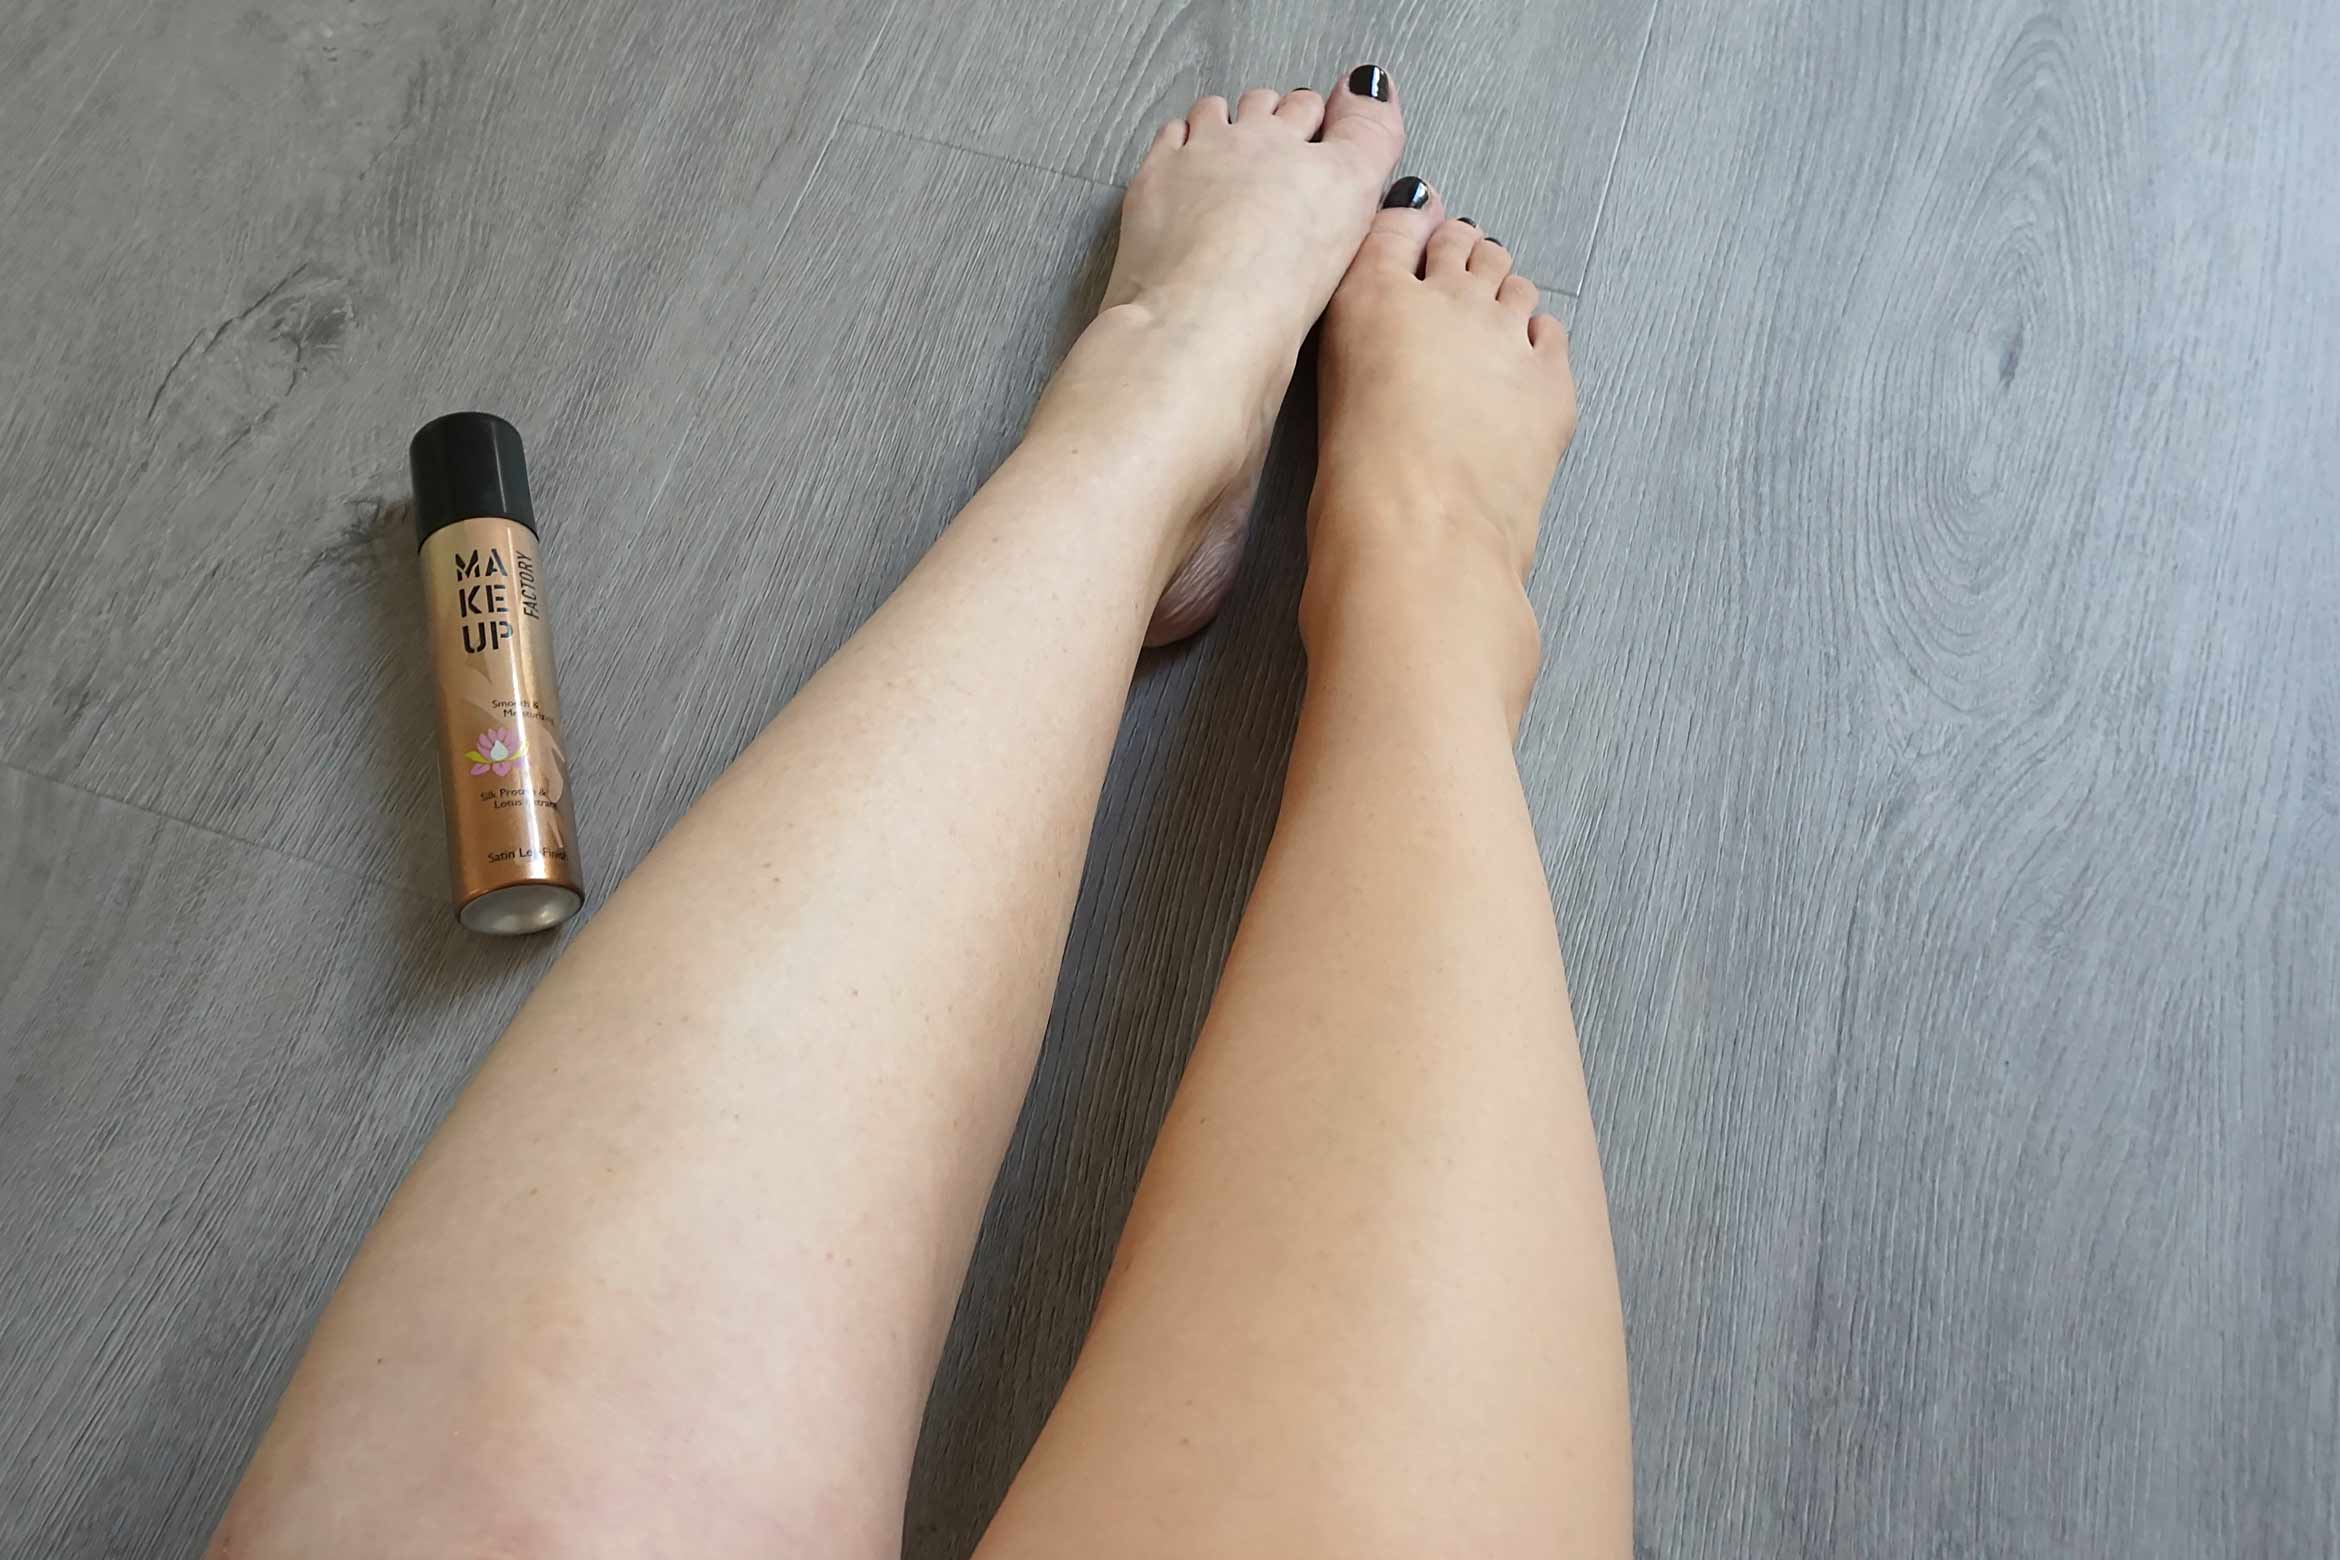 make-up-factory-satin-leg-finish-review-look